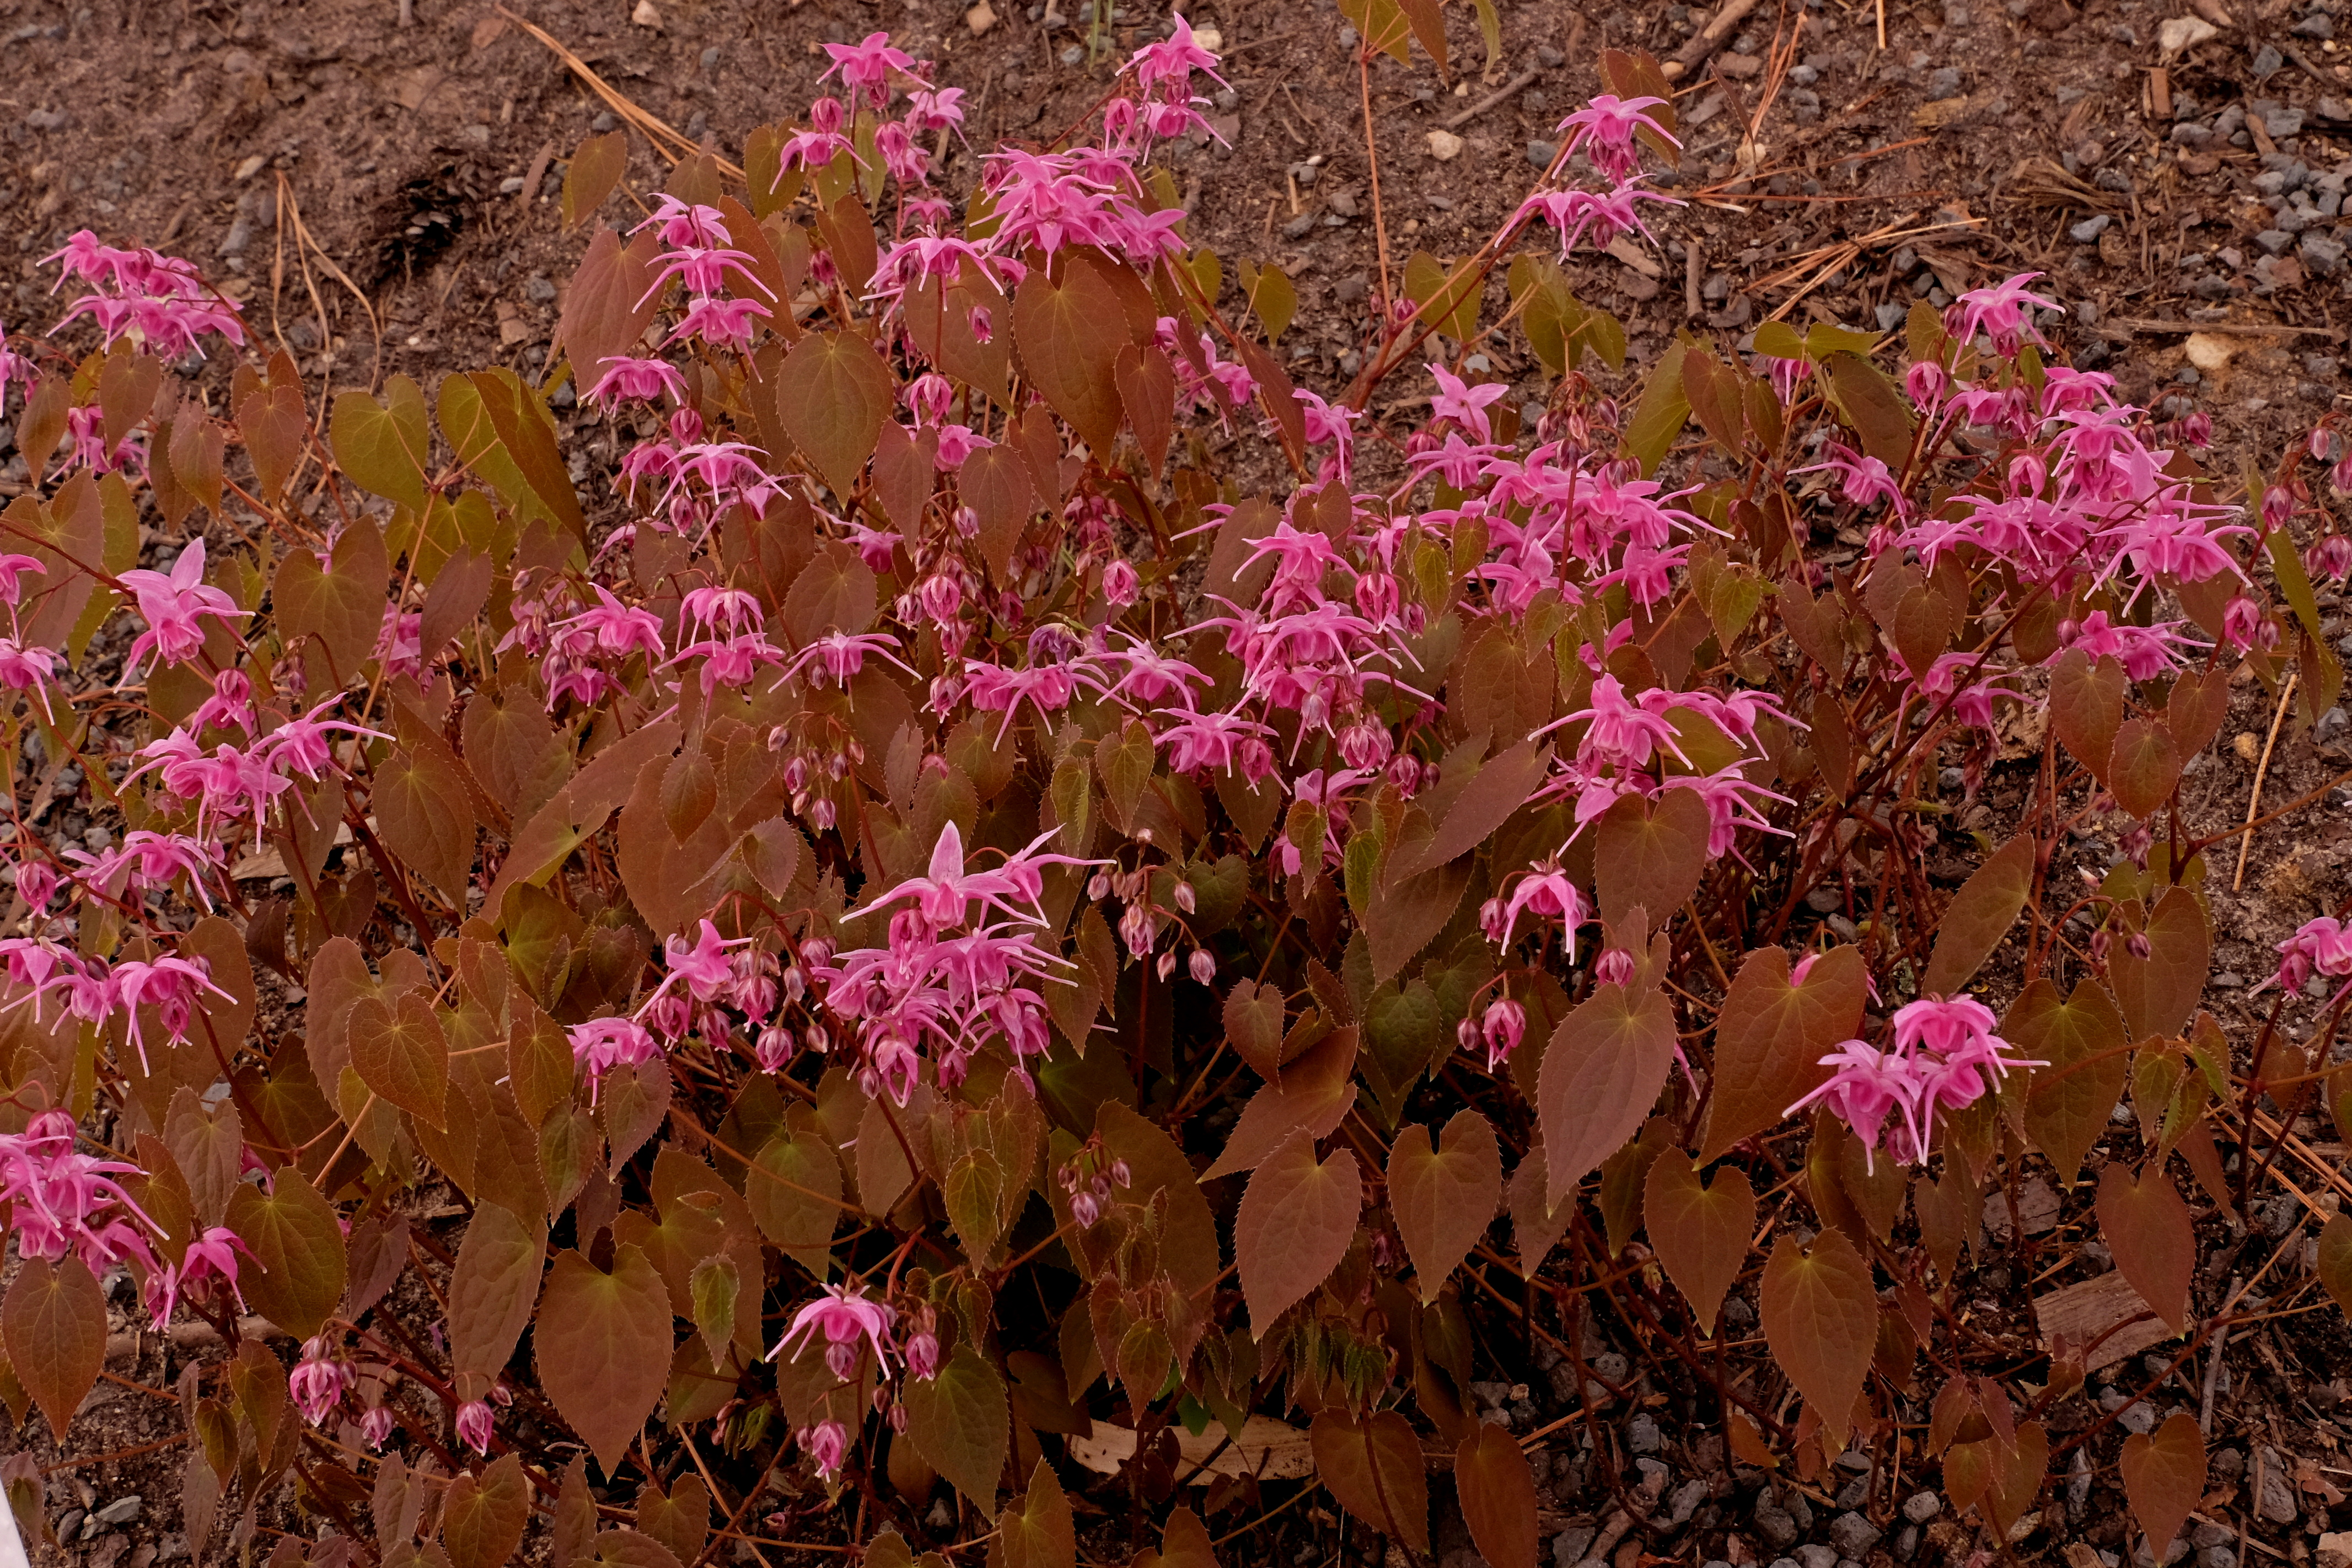 Epimedium 'Pink Parasol' @ JLBG - (PDN05-016) - A 	2010 JLBG/PDN introduction